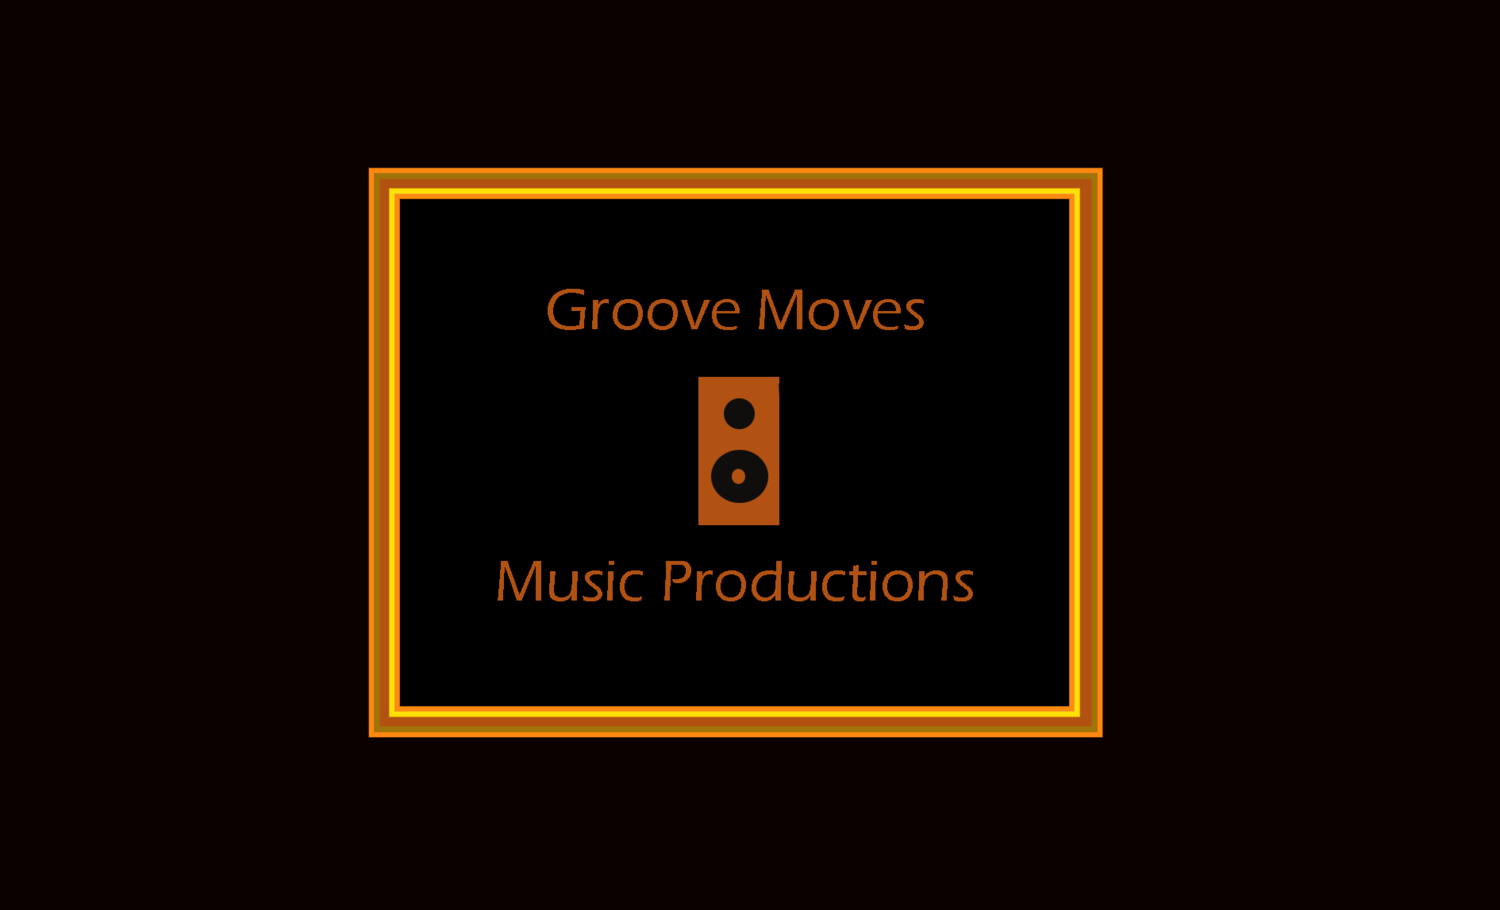 GROOVE MOVES MUSIC PRODuCTIONS